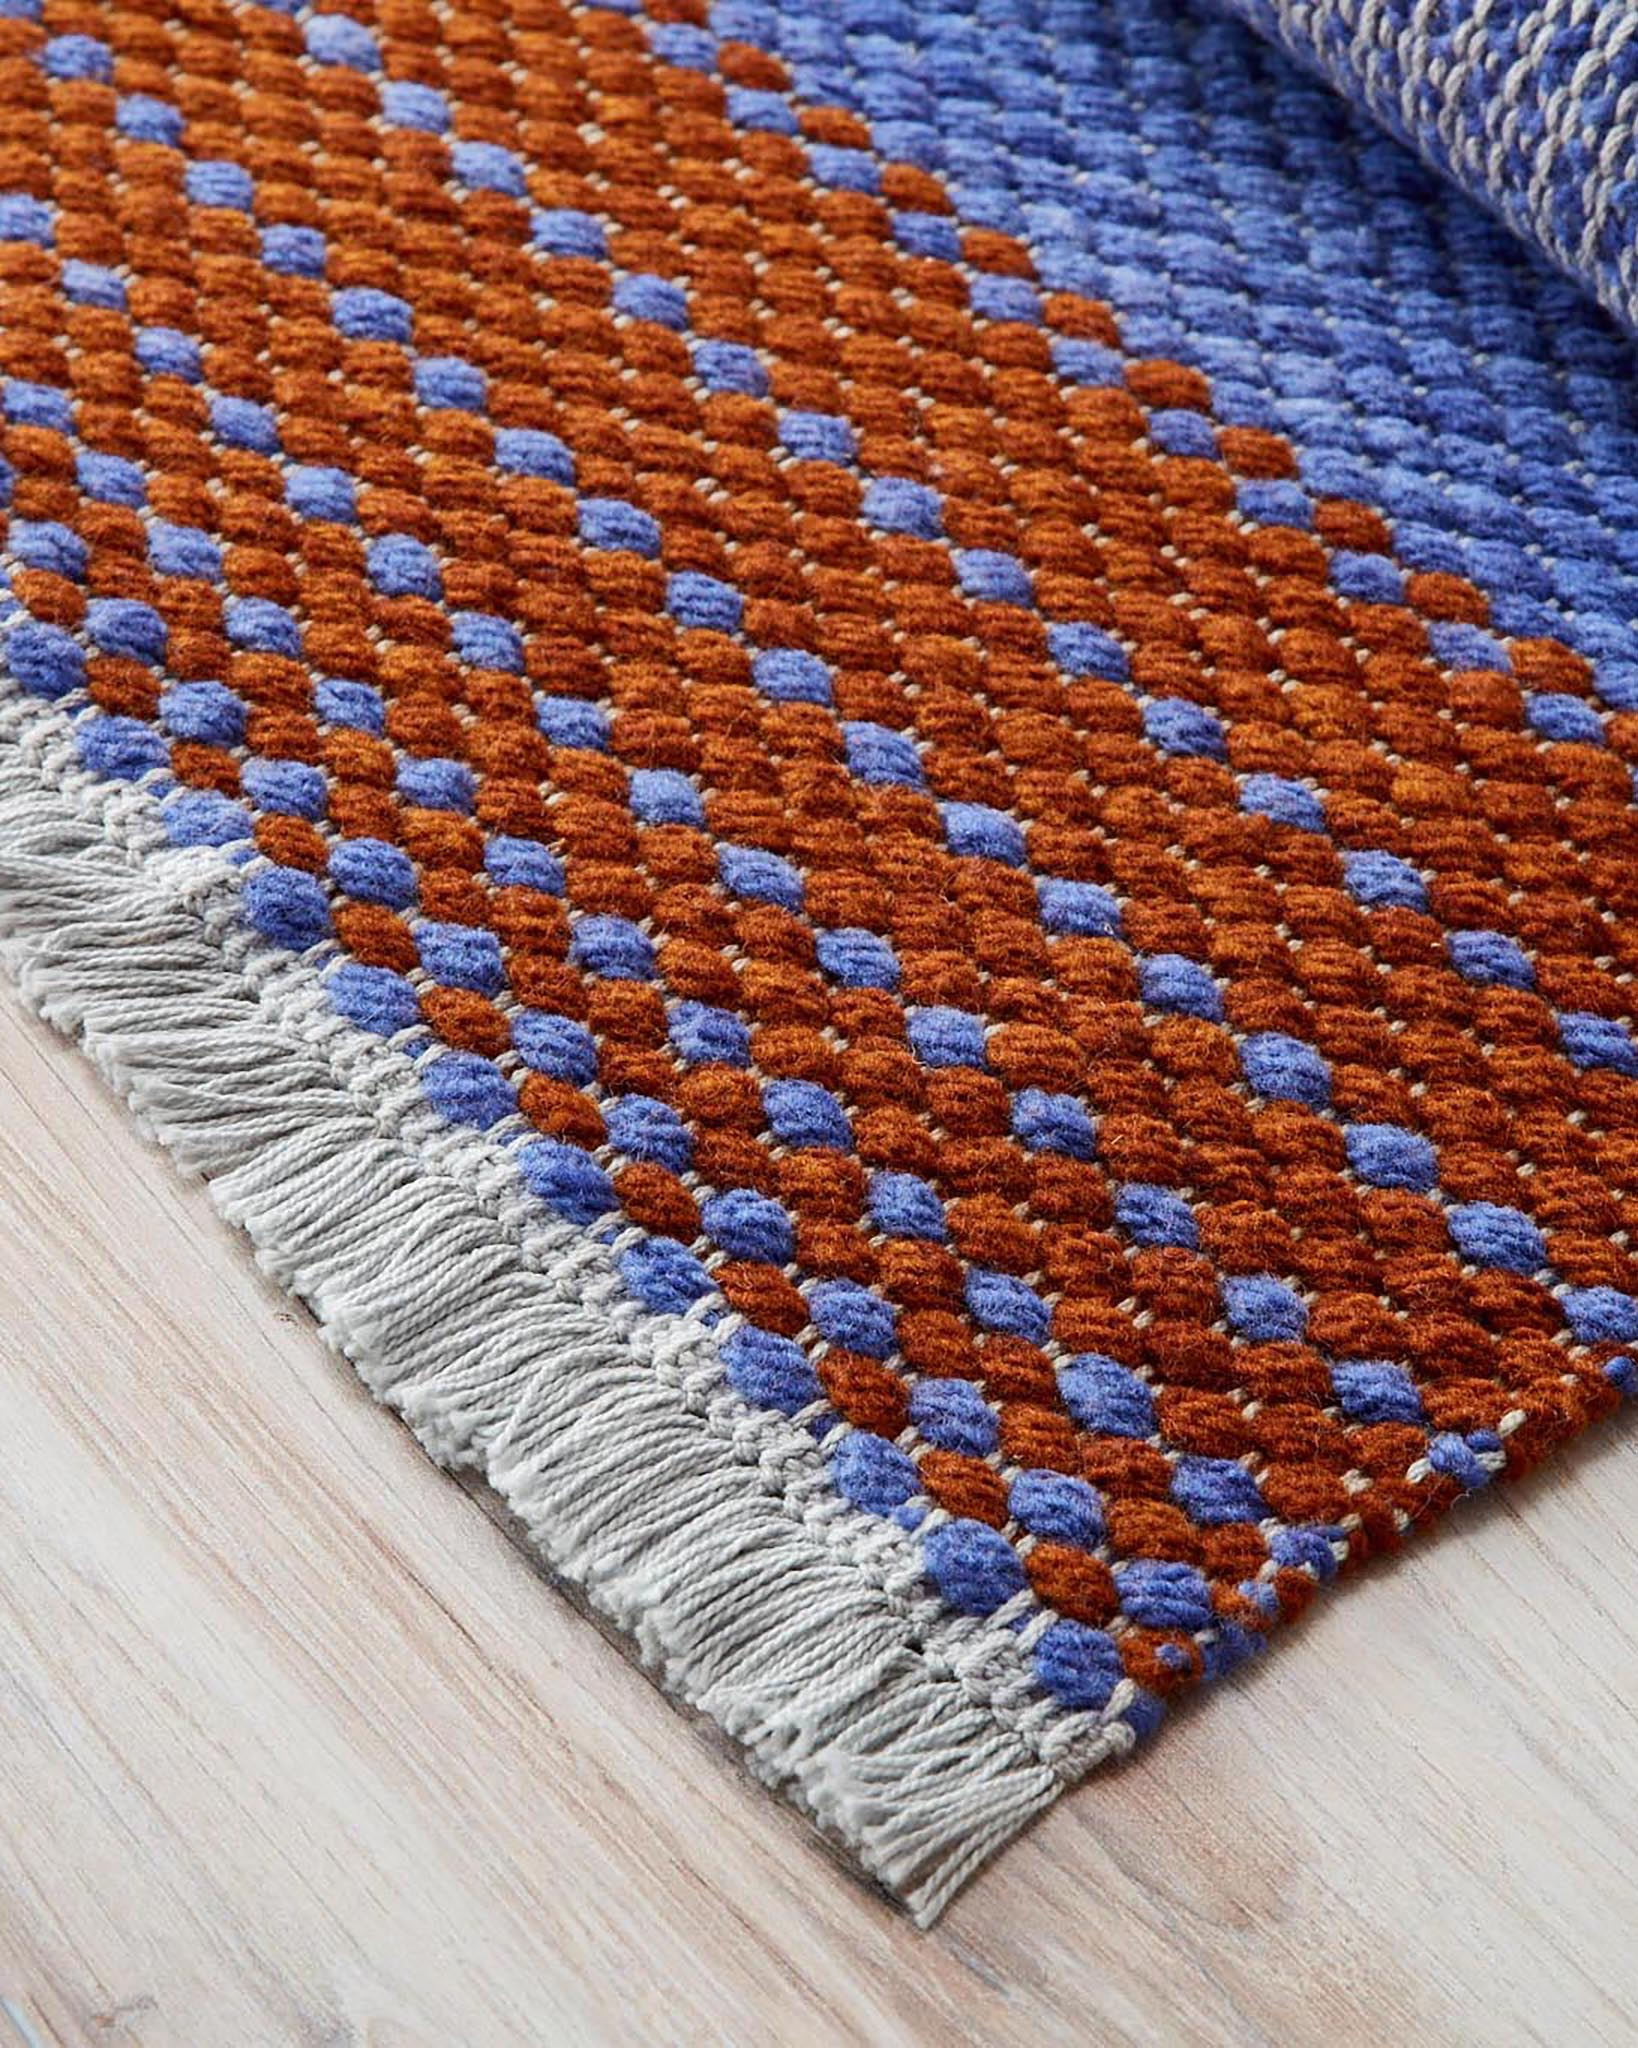 Basketweave Rug Rigid Heddle Weaving Pattern